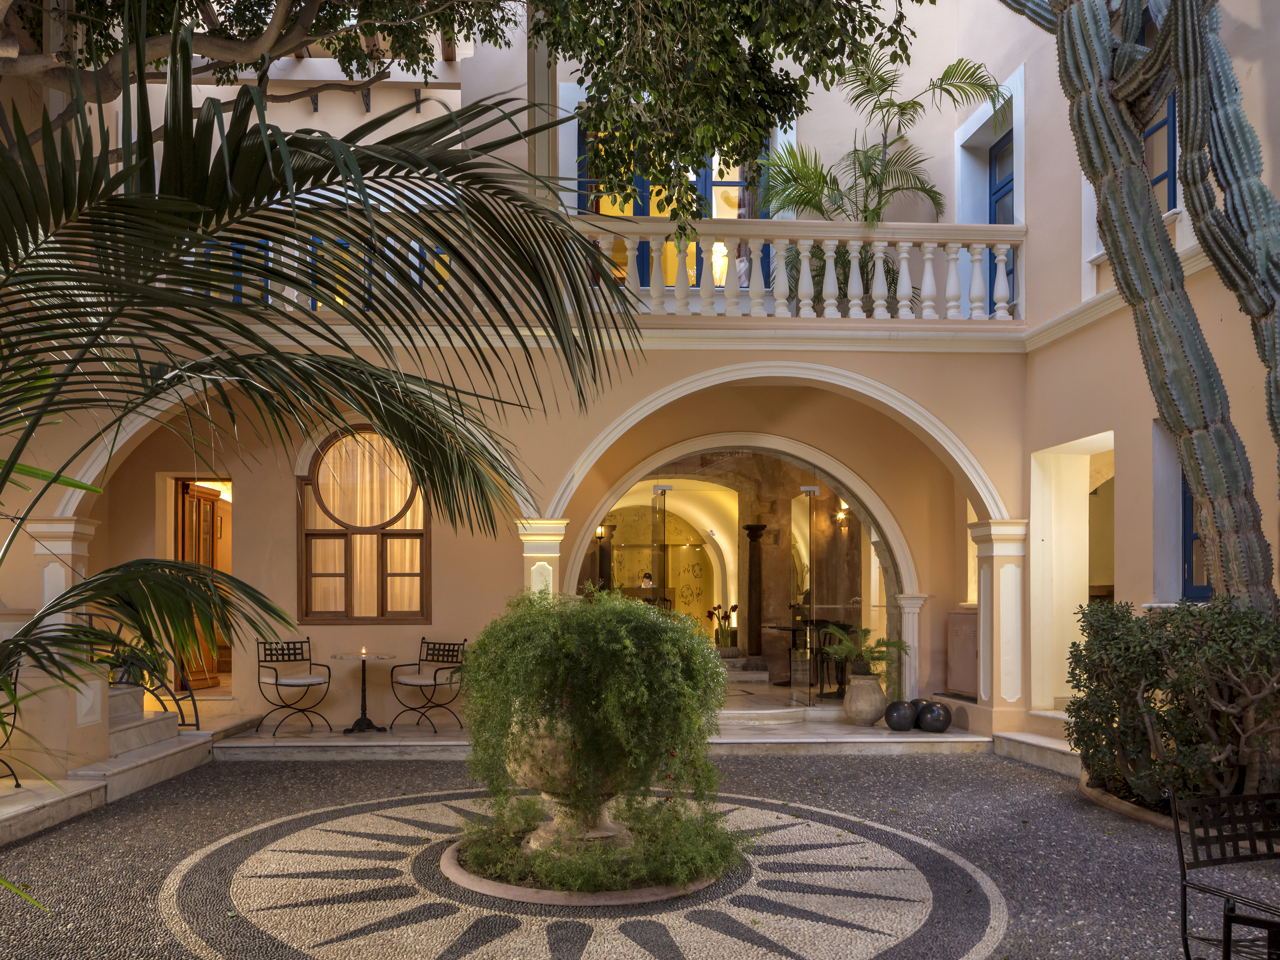 The History Of Casa Delfino Hotel - Chania Crete